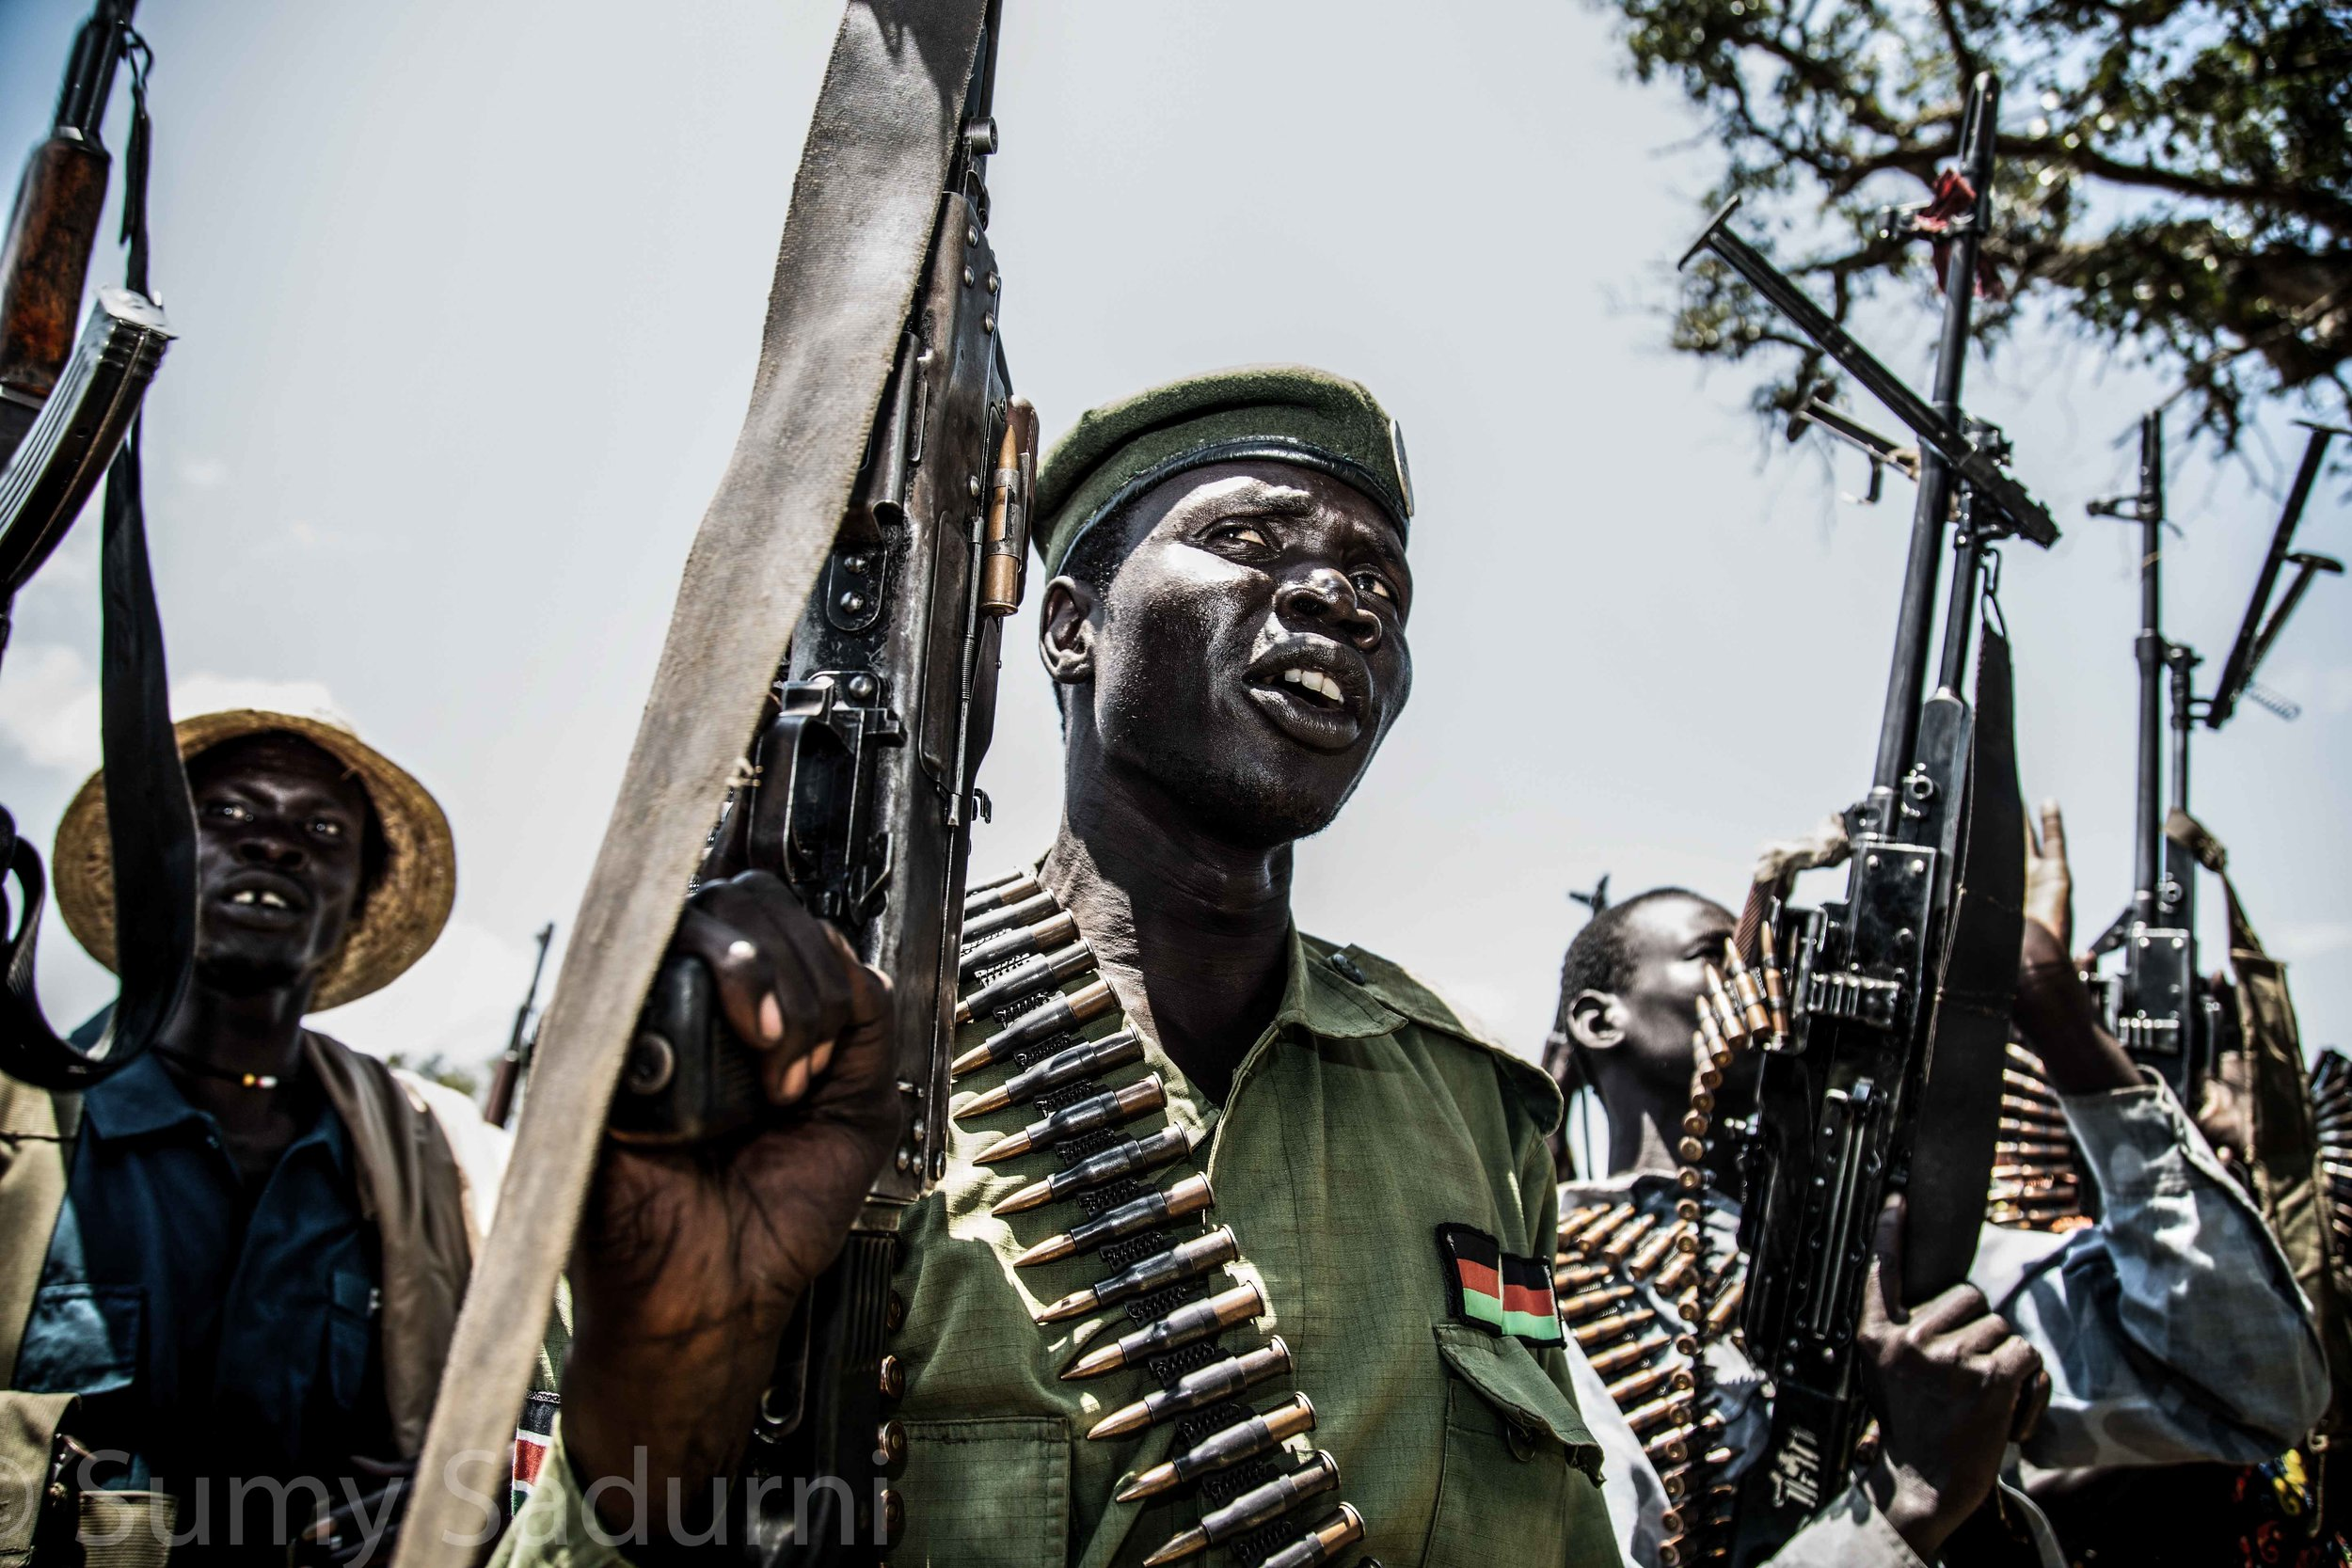 Print 2 : A rebel fighter from the Sudan People's Liberation Army - In Opposition (SPLA-IO) prepares to be deployed to the frontline in Panyume, South Sudan.